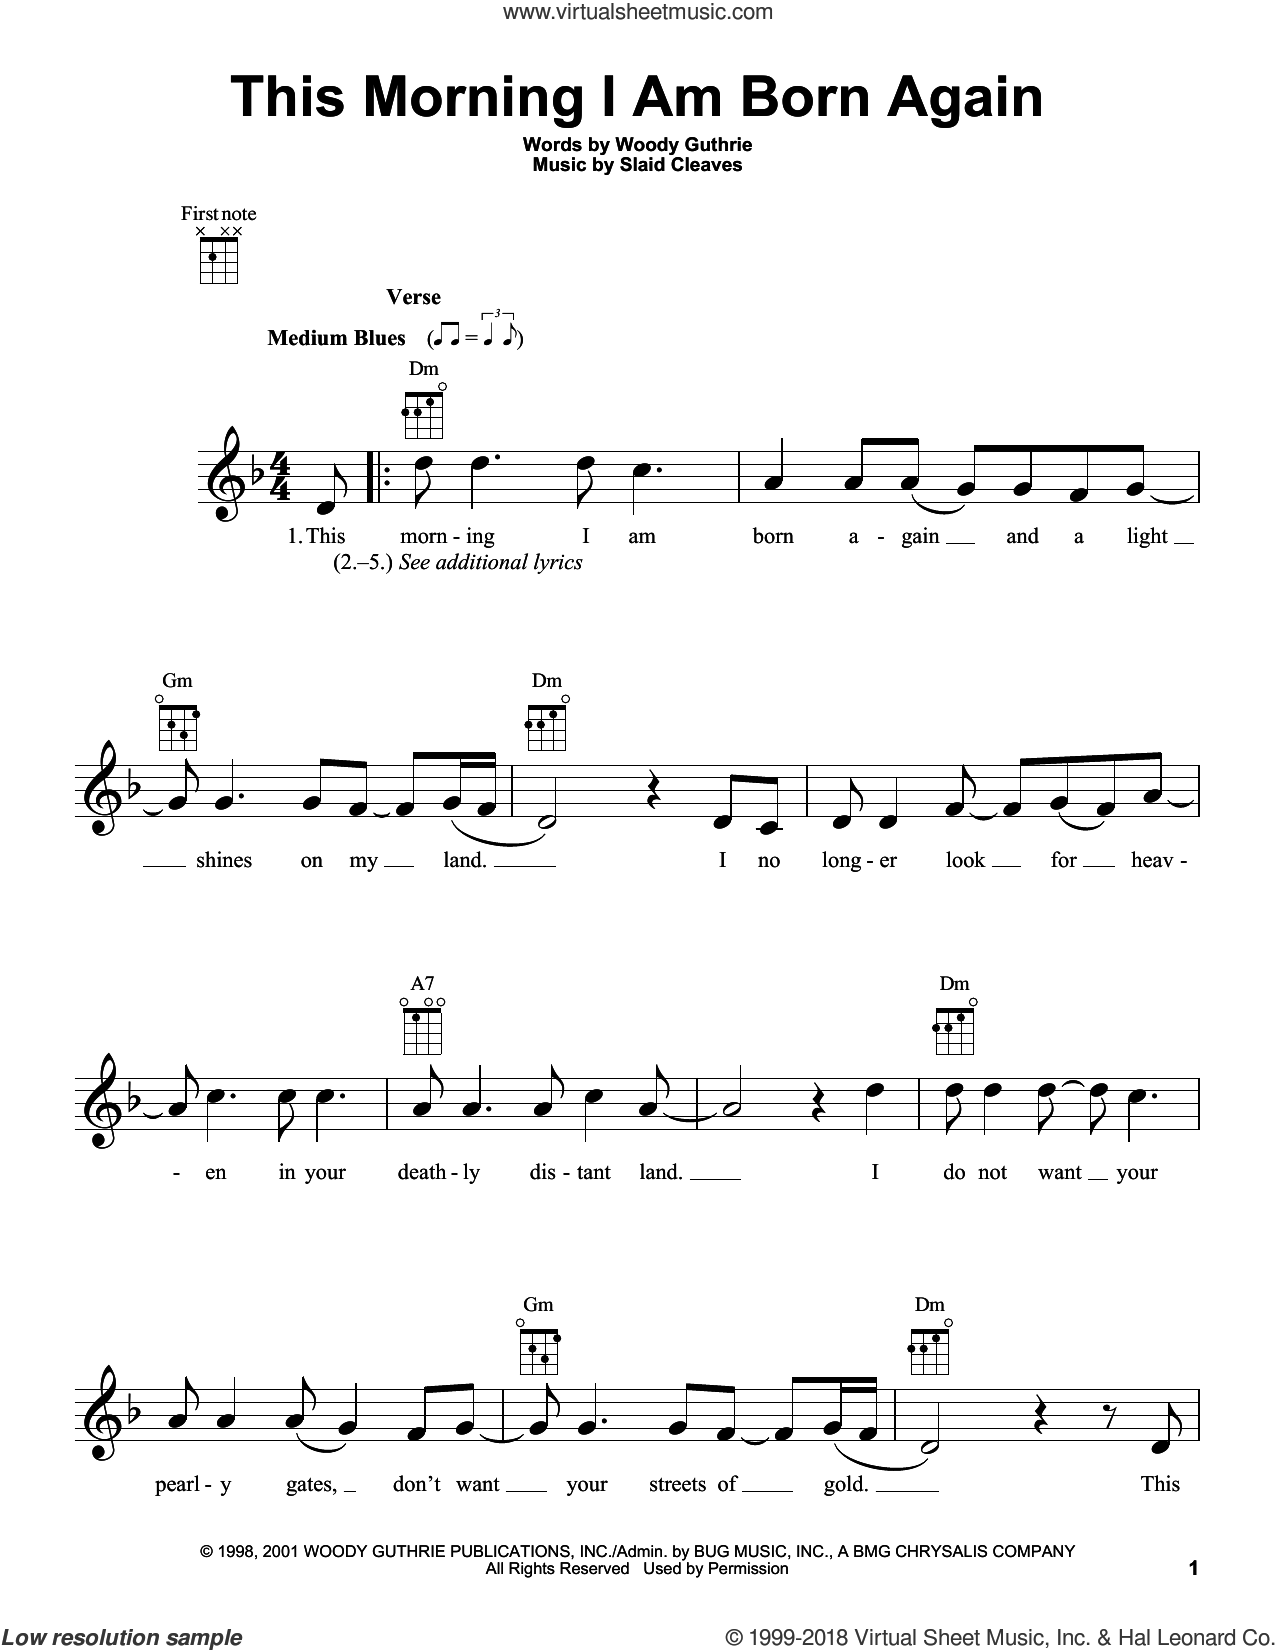 This Morning I Am Born Again sheet music for ukulele by Woody Guthrie and Slaid Cleaves, intermediate skill level